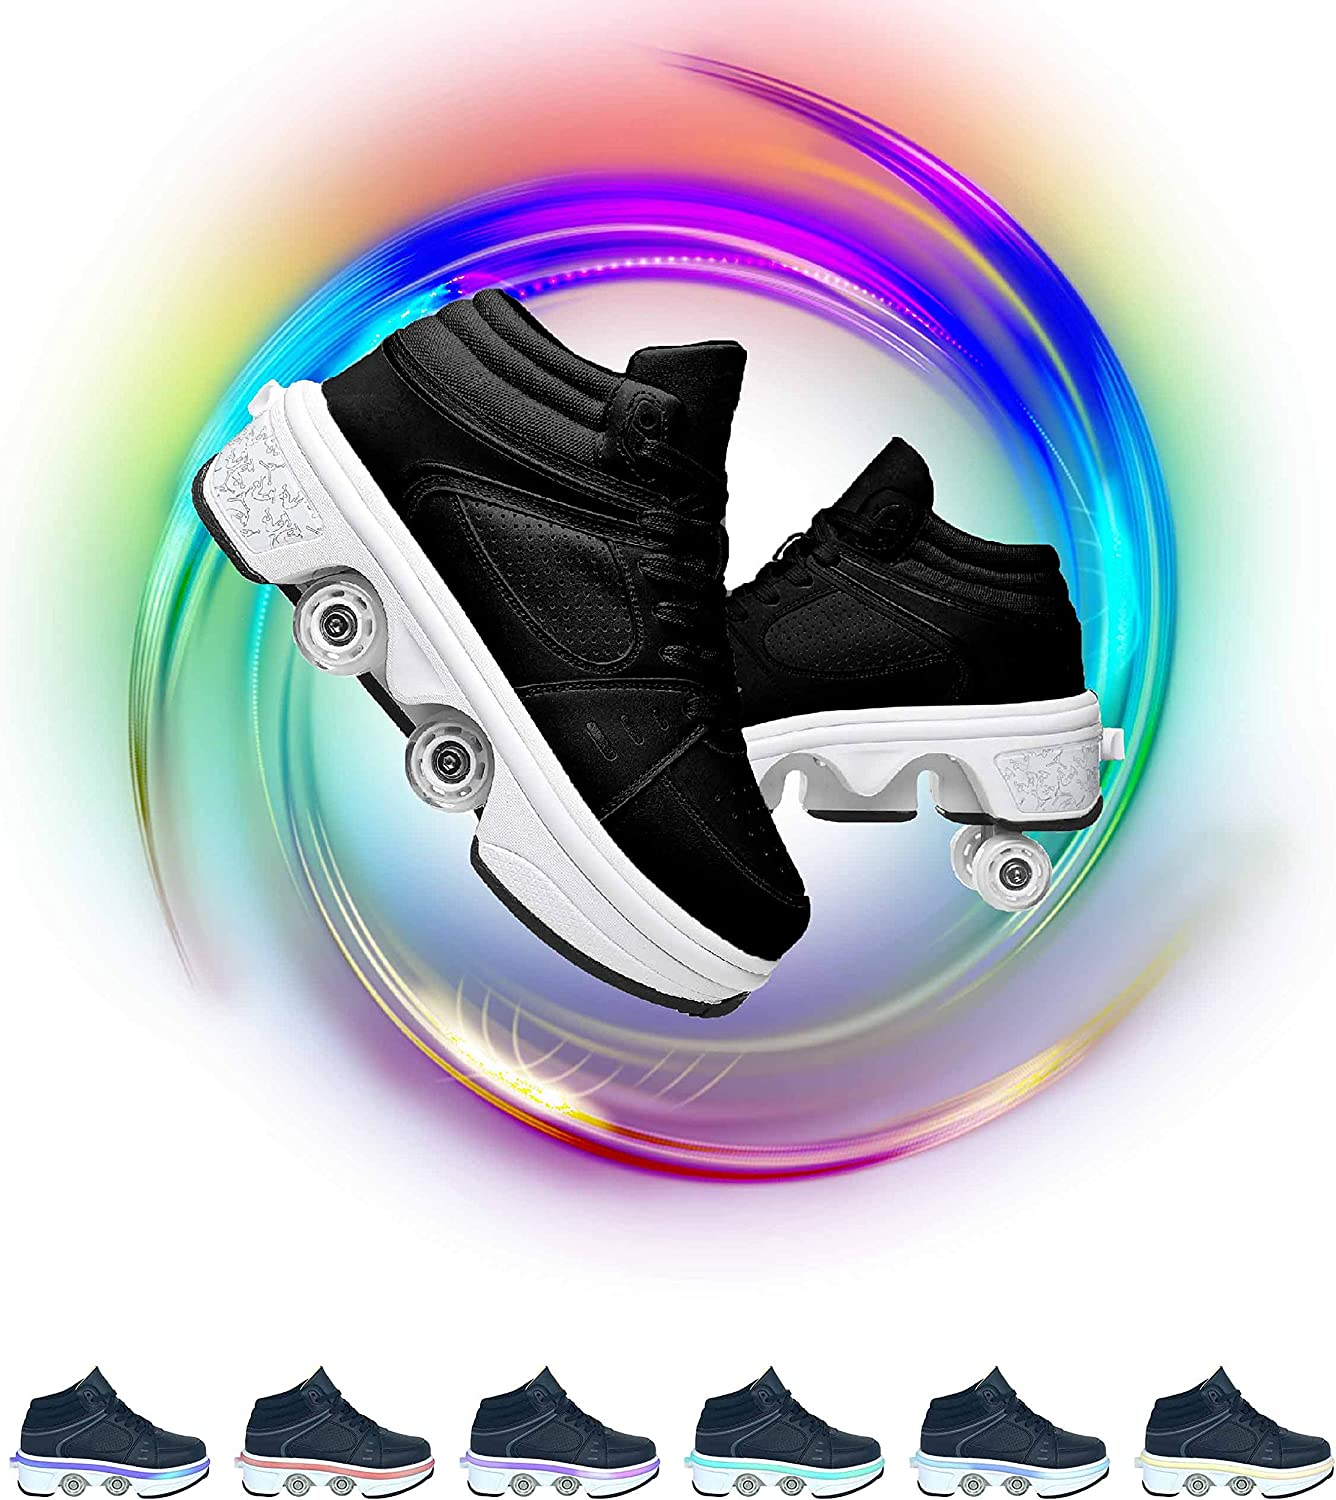 Deformation Roller Shoes Skates for Fashionable Autom Children's Women El Paso Mall Adult